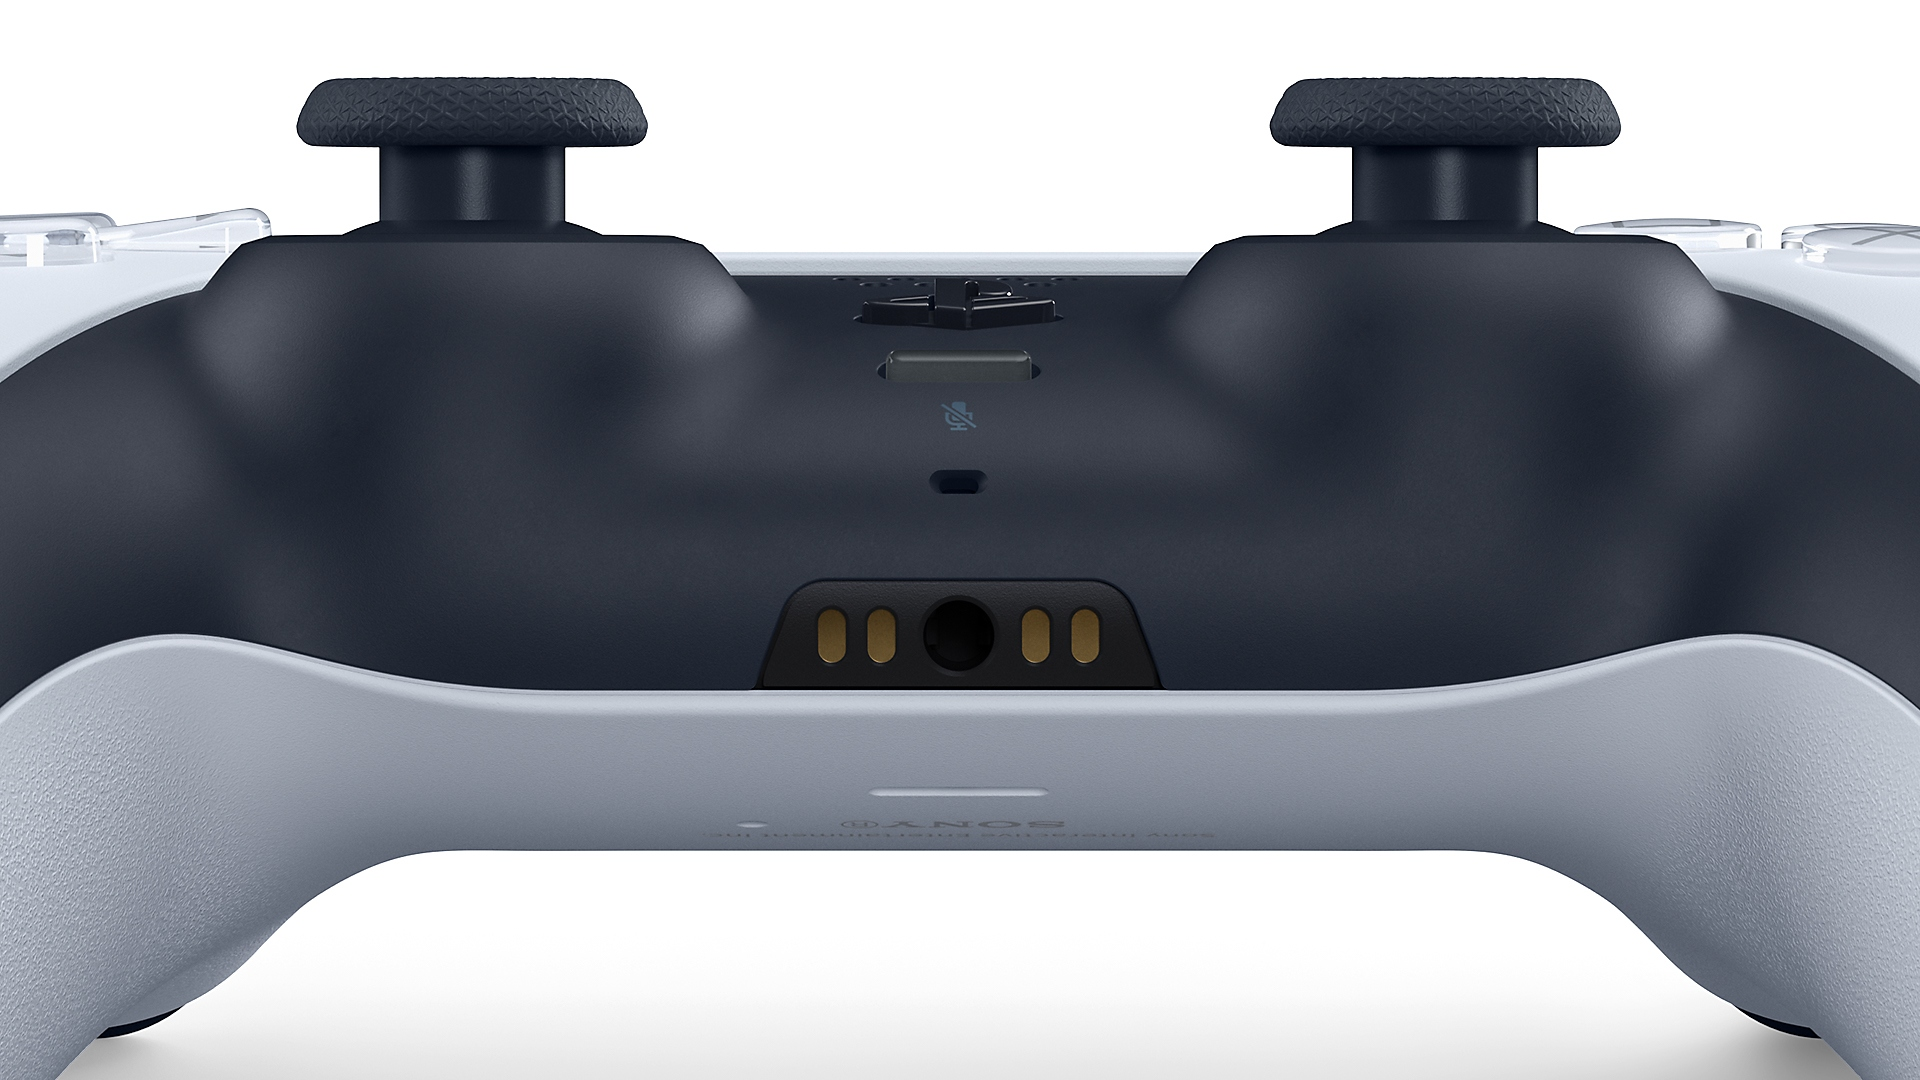 DualSense wireless controller | The innovative new controller for PS5 | PlayStation